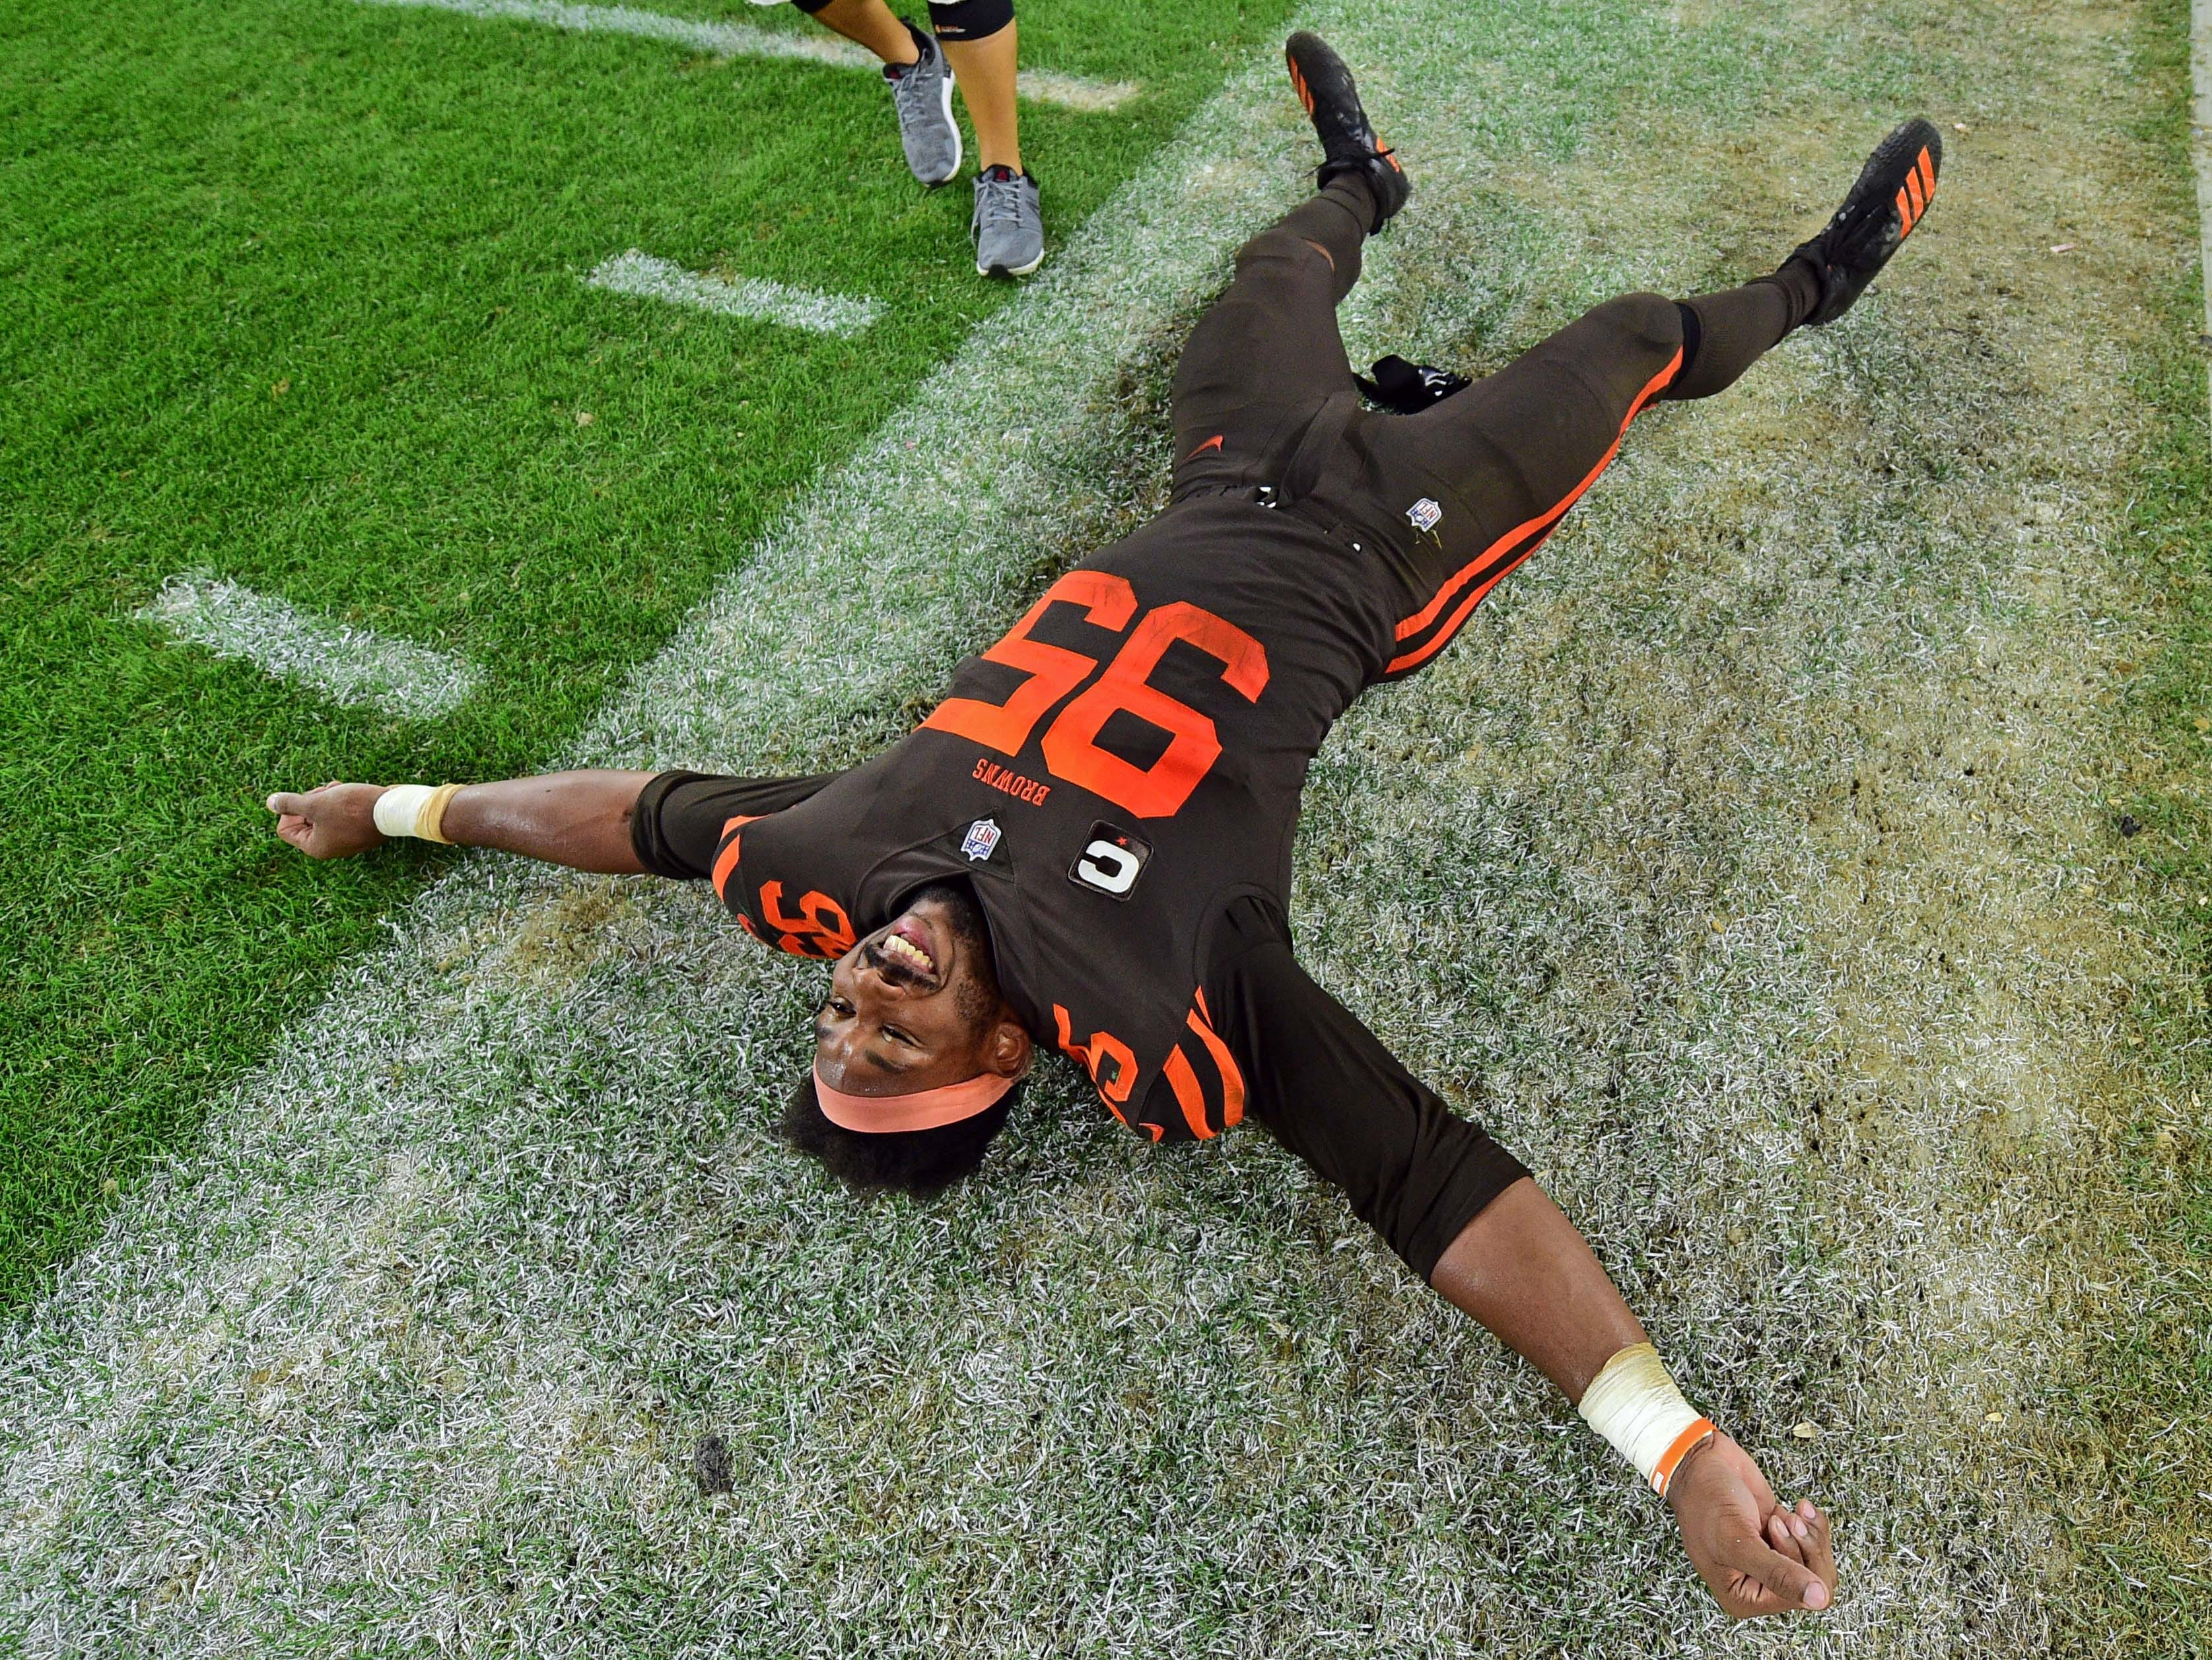 Sept. 20: Cleveland Browns defensive end Myles Garrett celebrates after a win against the New York Jets, the Browns' first victory since 2016.